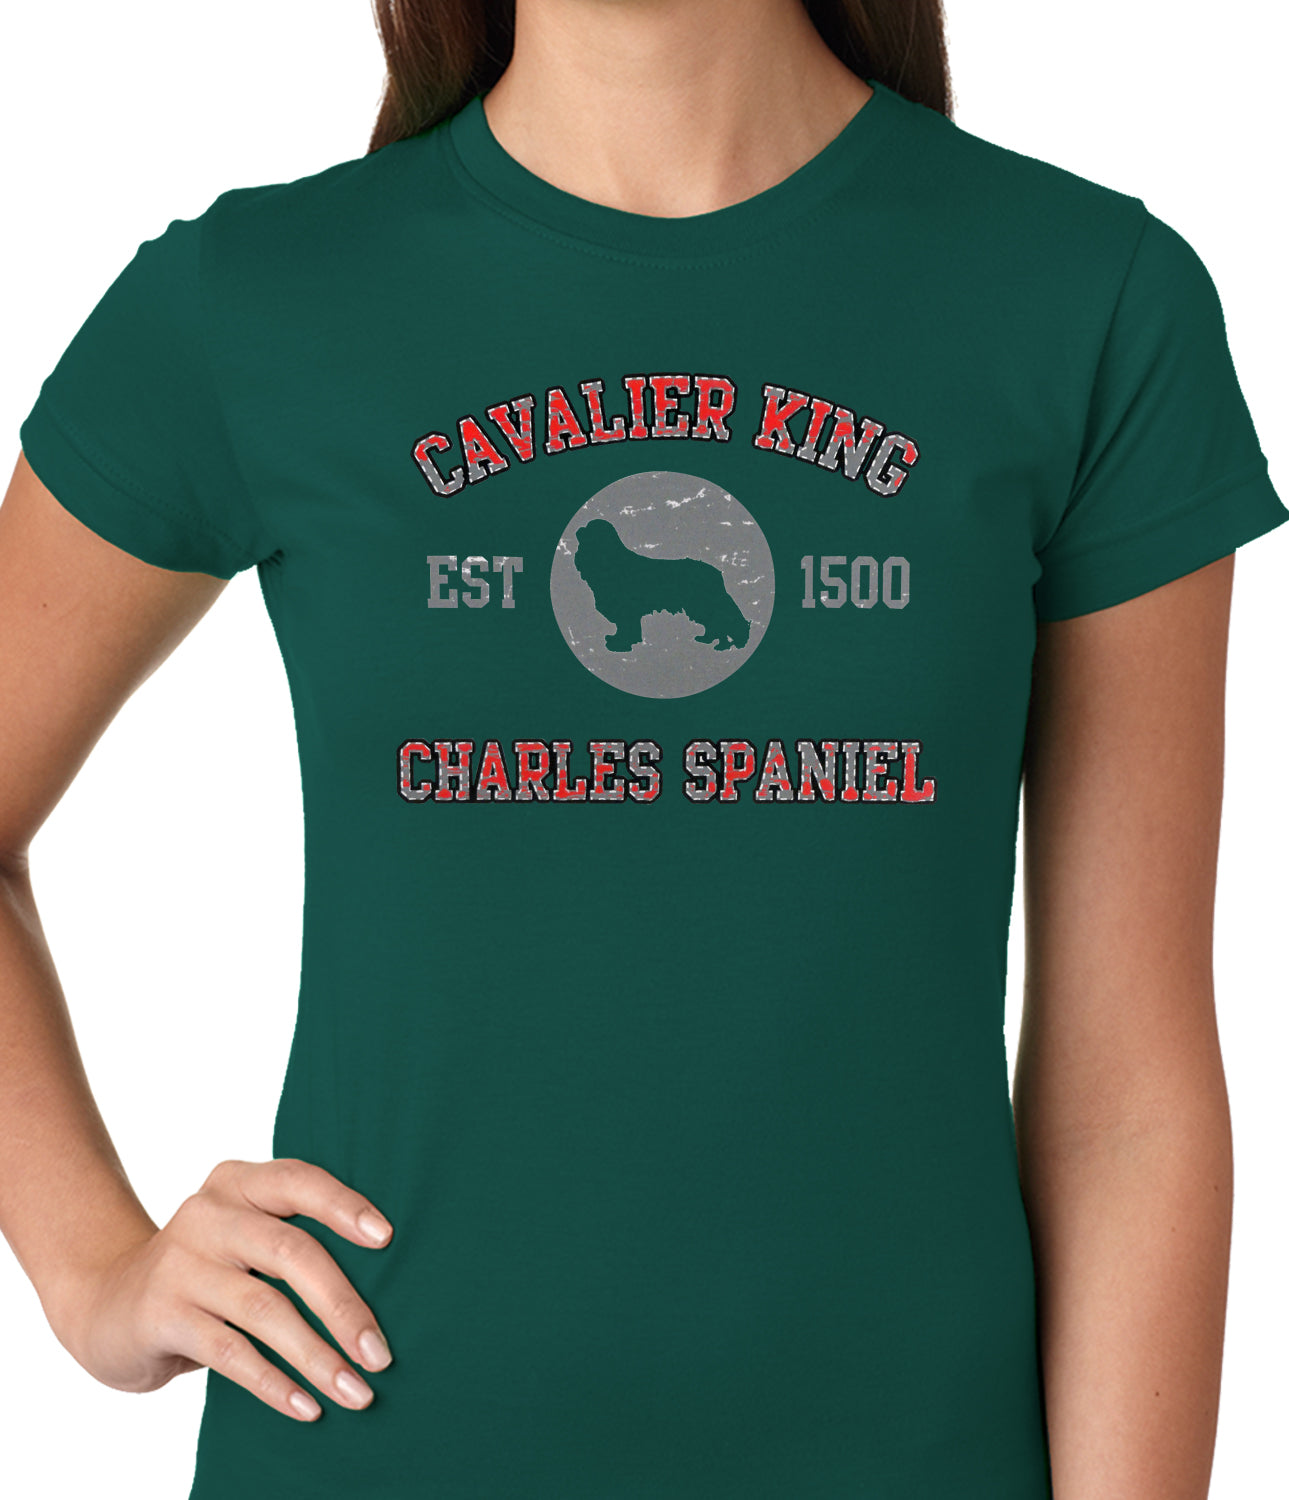 Cavalier King Charles Spaniel EST. 1500 Girls T-shirt